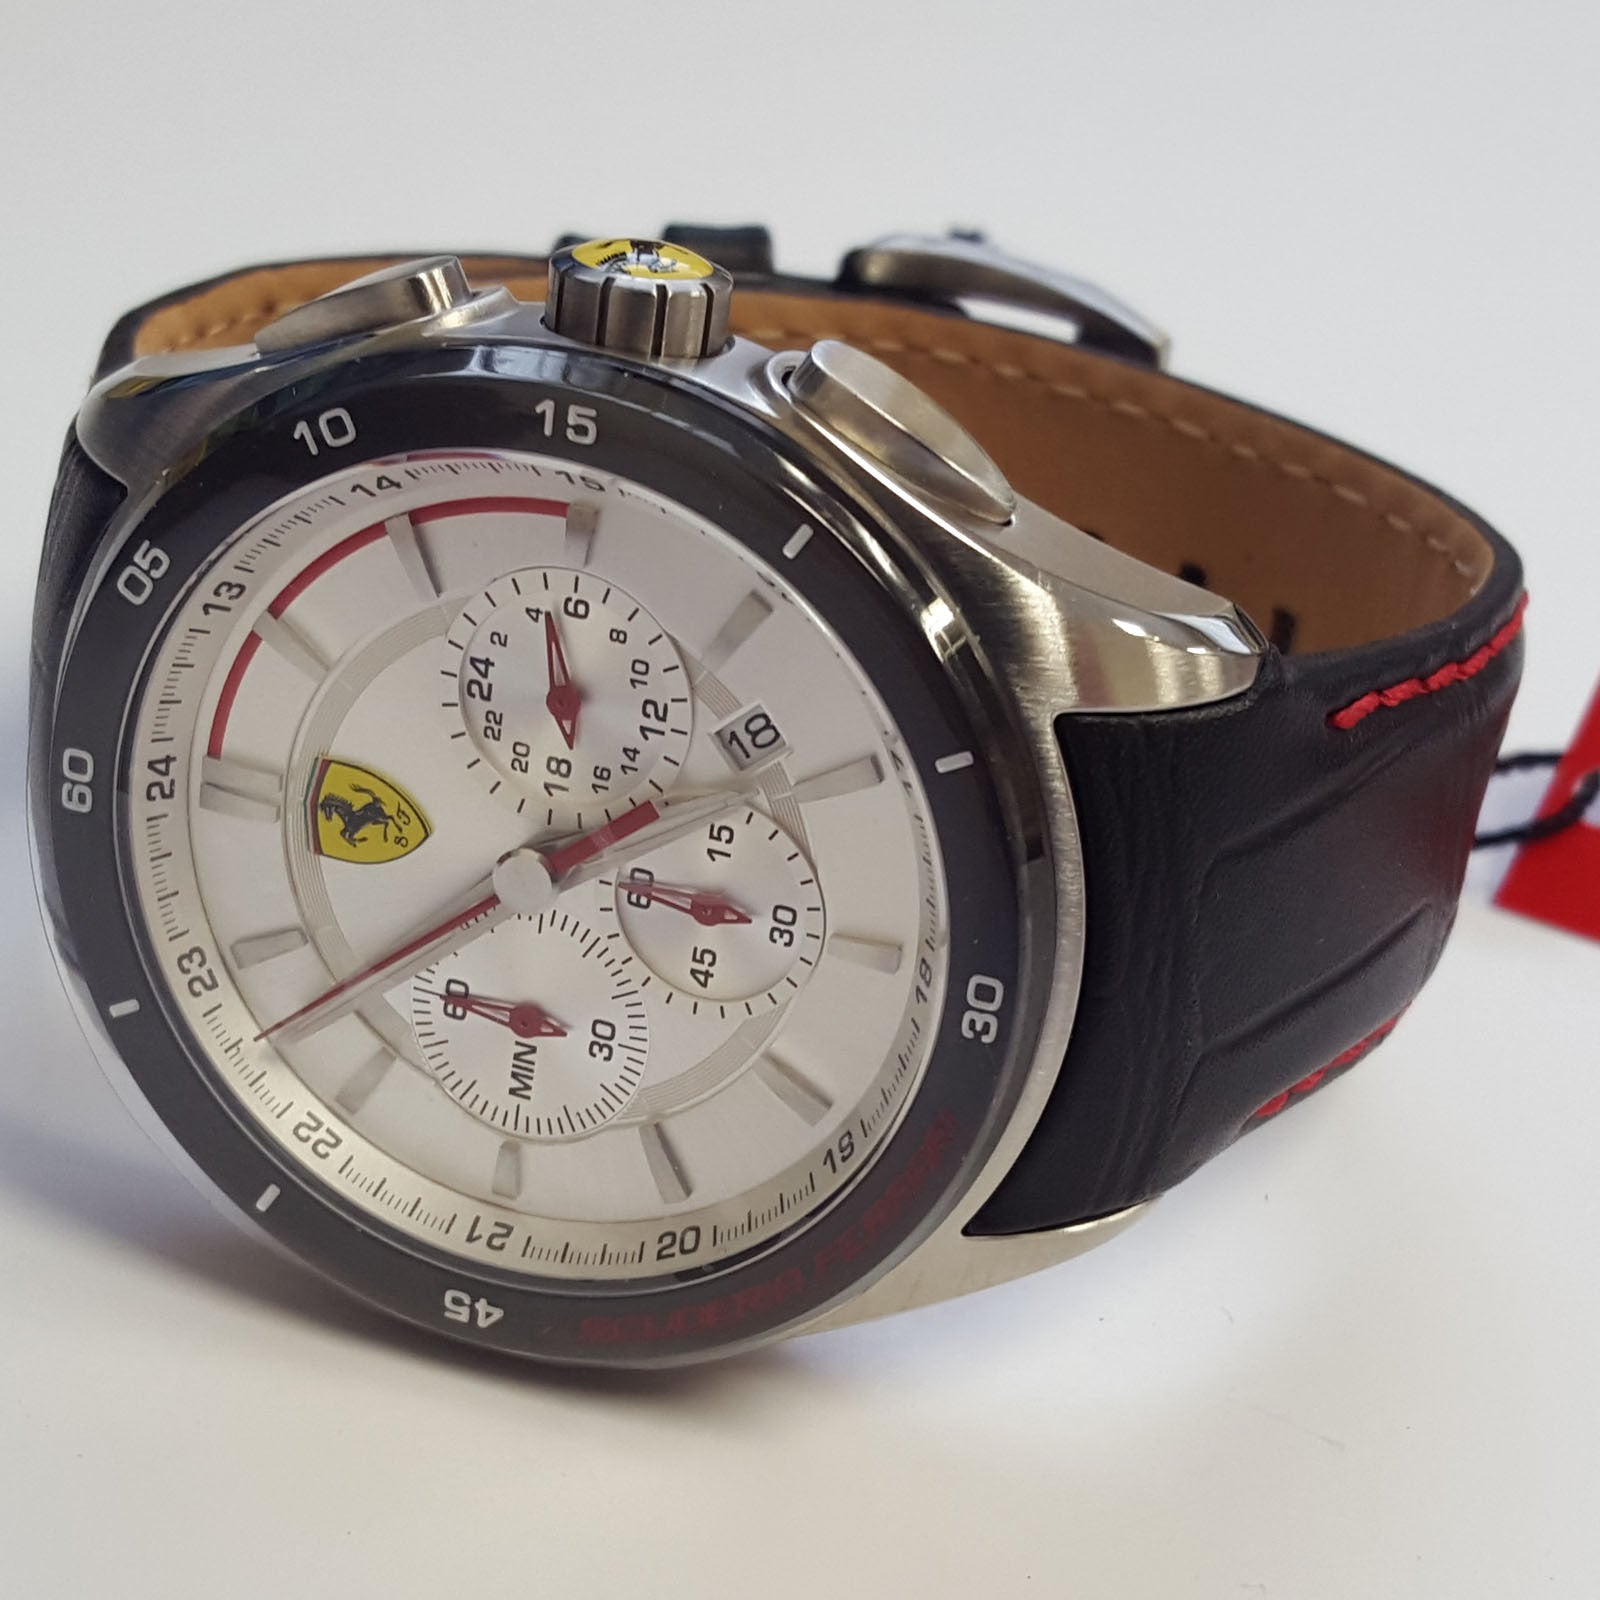 mens sporty gran premio chronograph white face leather watch by mens sporty gran premio chronograph white face leather watch by ferrari 830186